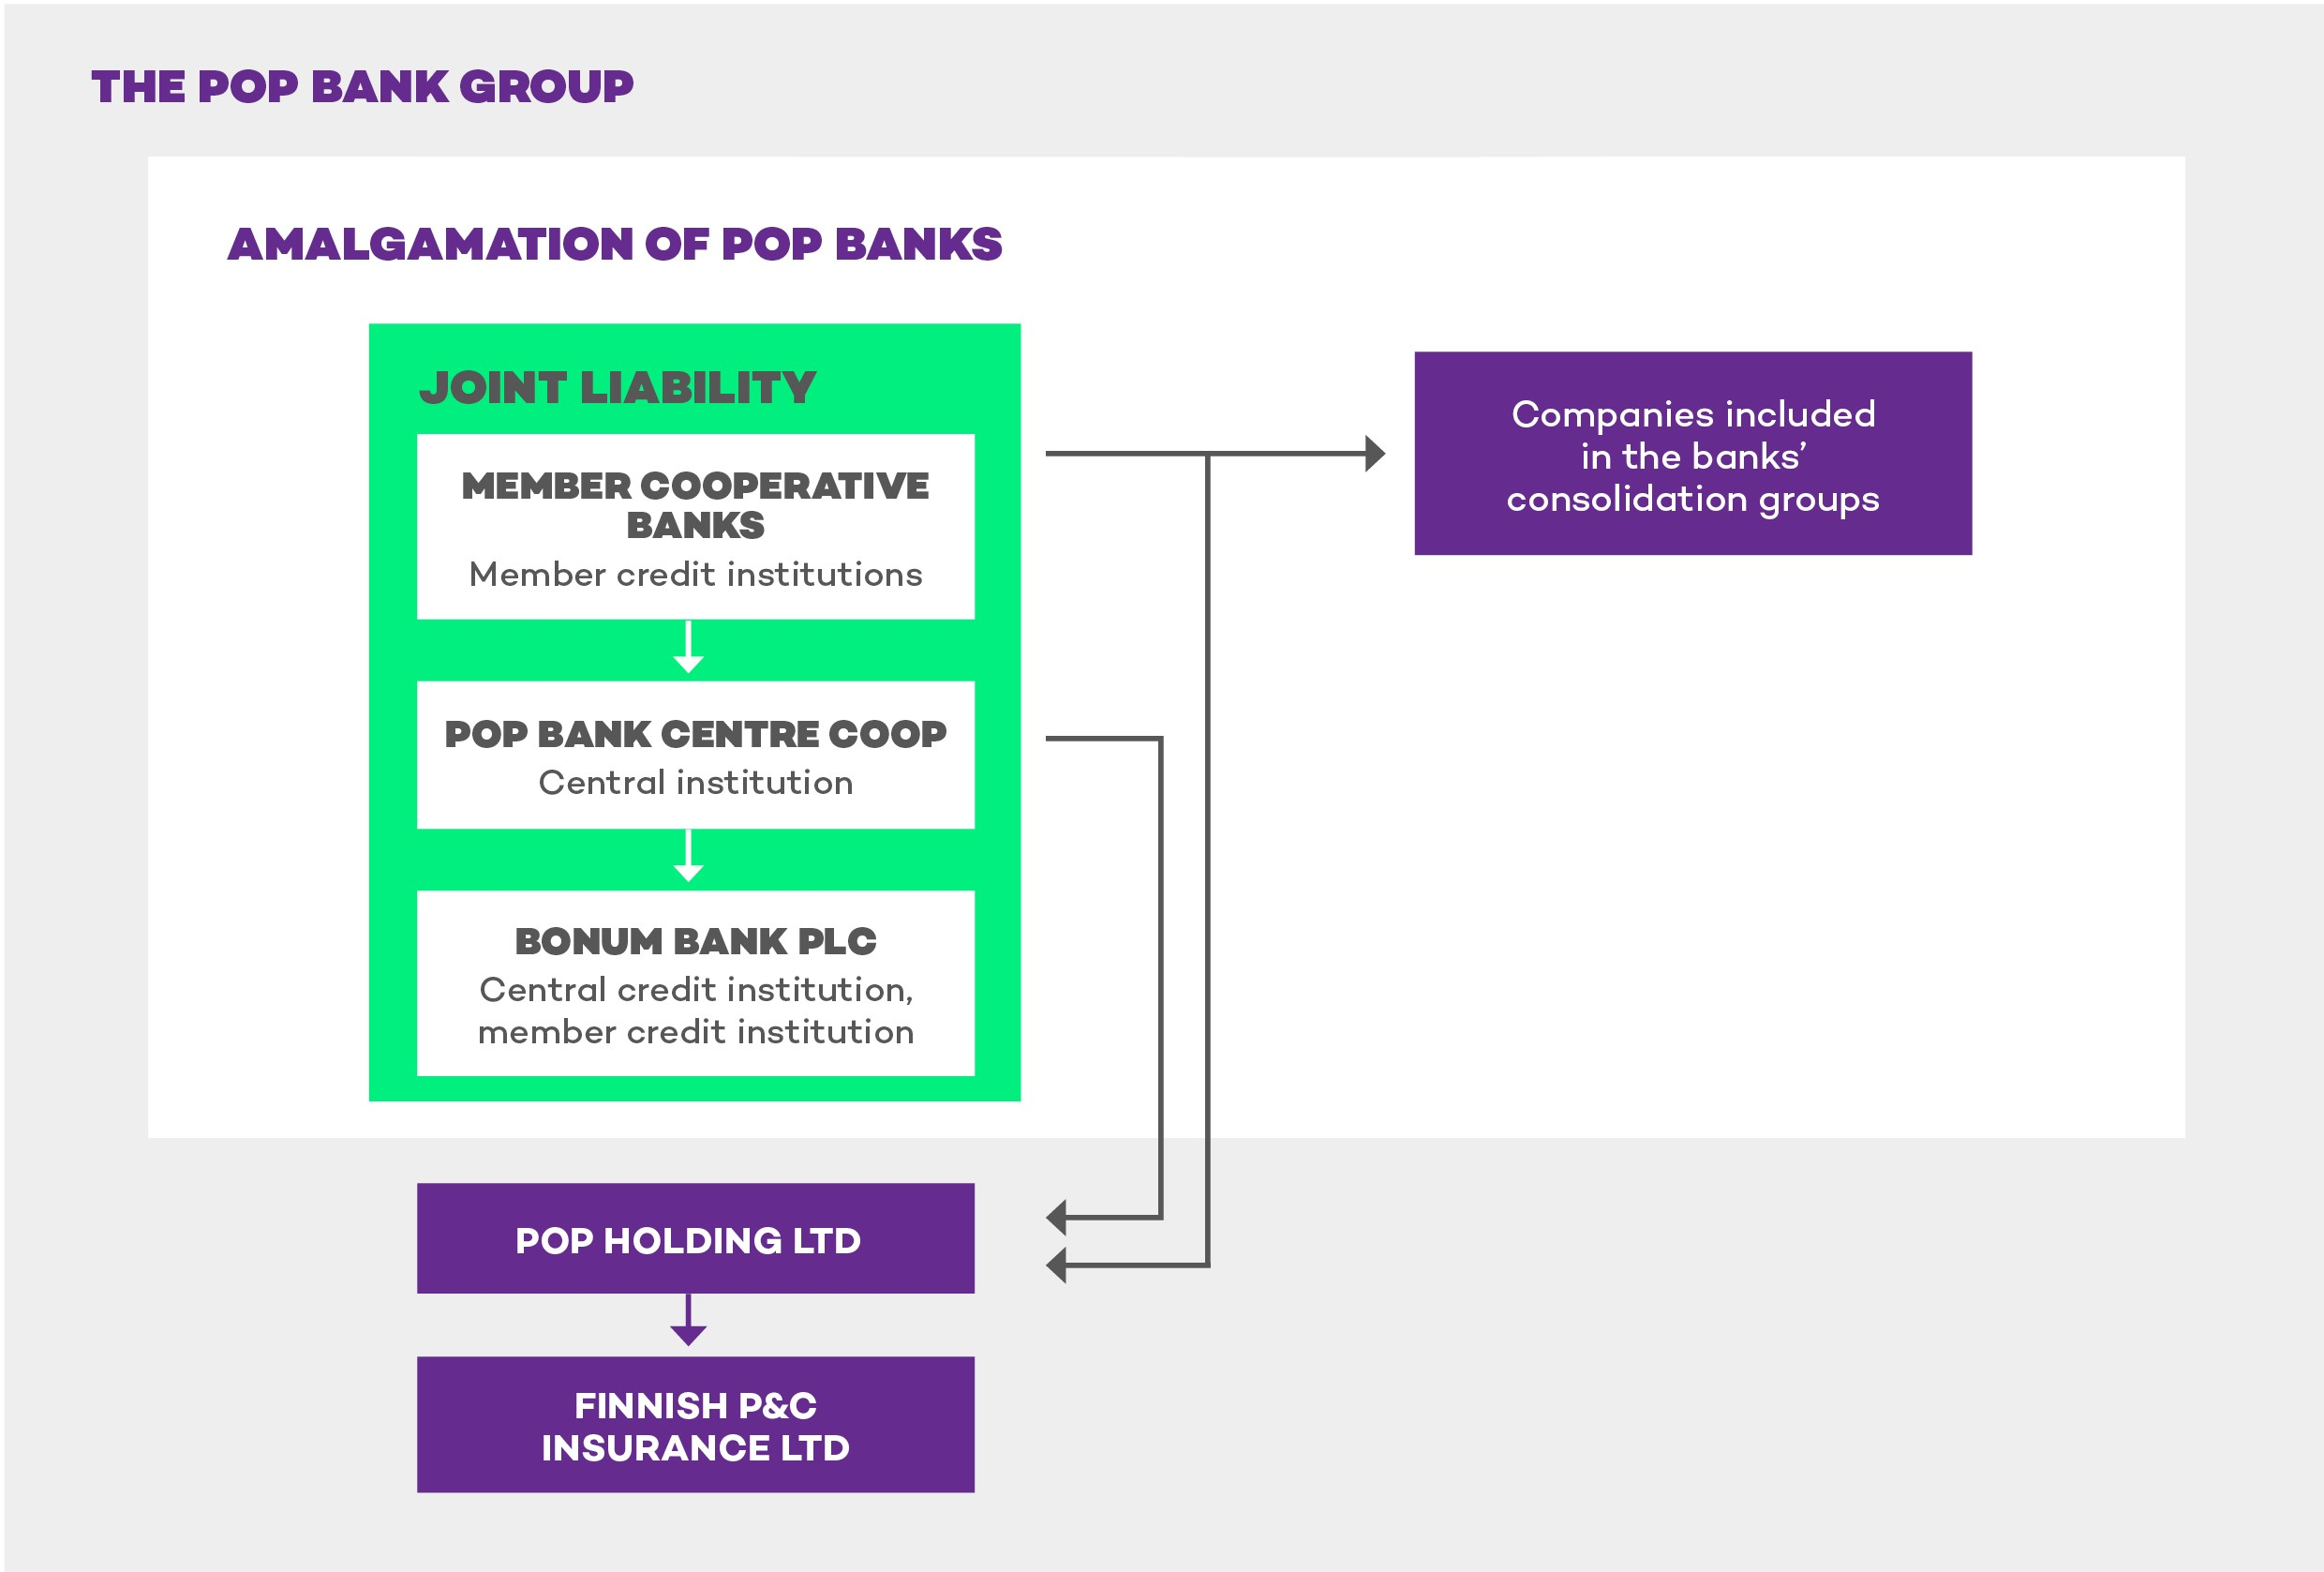 POP Bank Group Organisation chart 2020